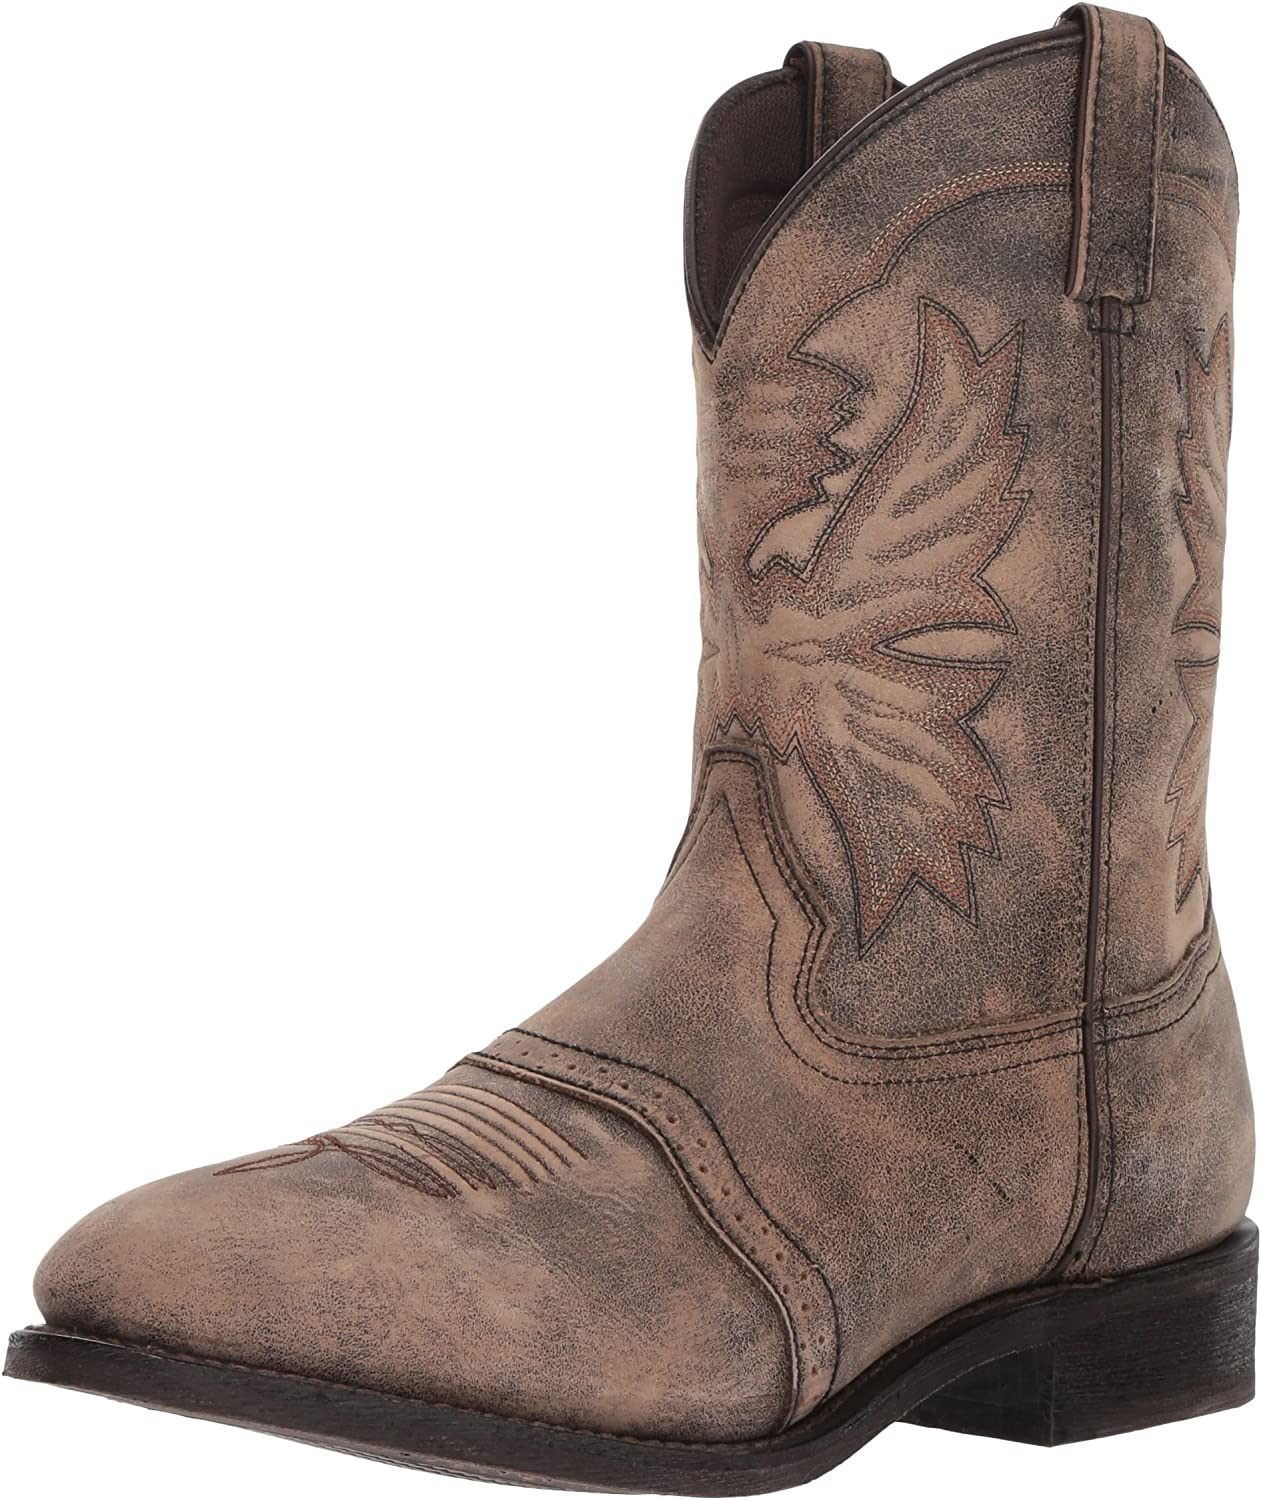 Super beauty Low price product restock quality top Ad Tec Mens 11 in Western Bo Work Tumbled Leather Cowboy Classic